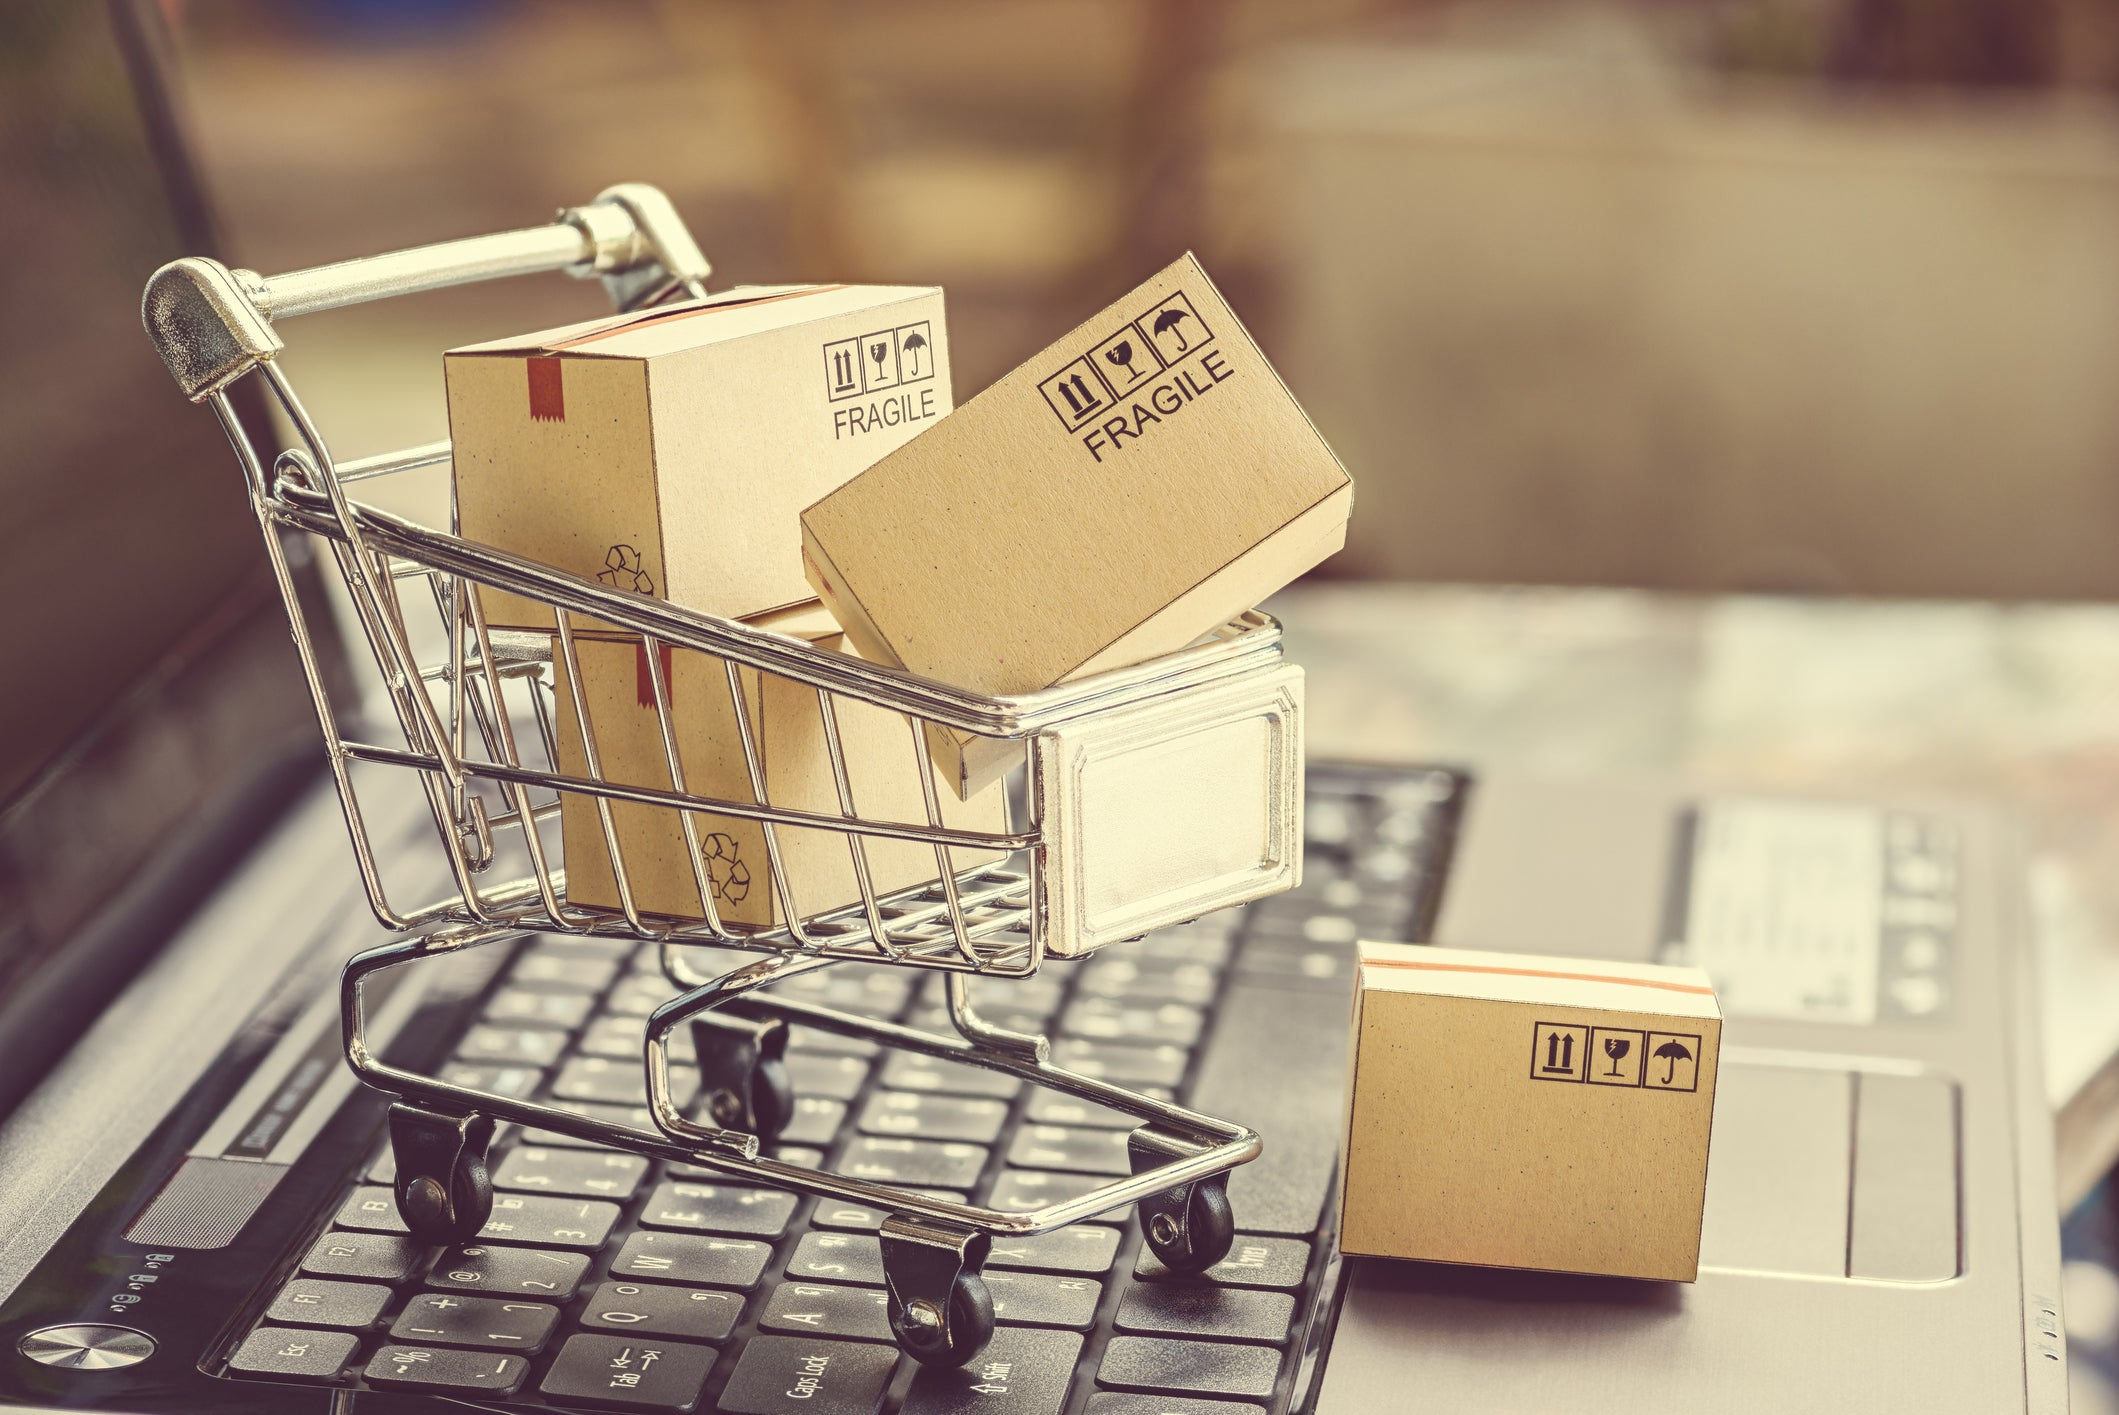 Tiny parcels in a little shopping cart on top of a laptop keyboard.